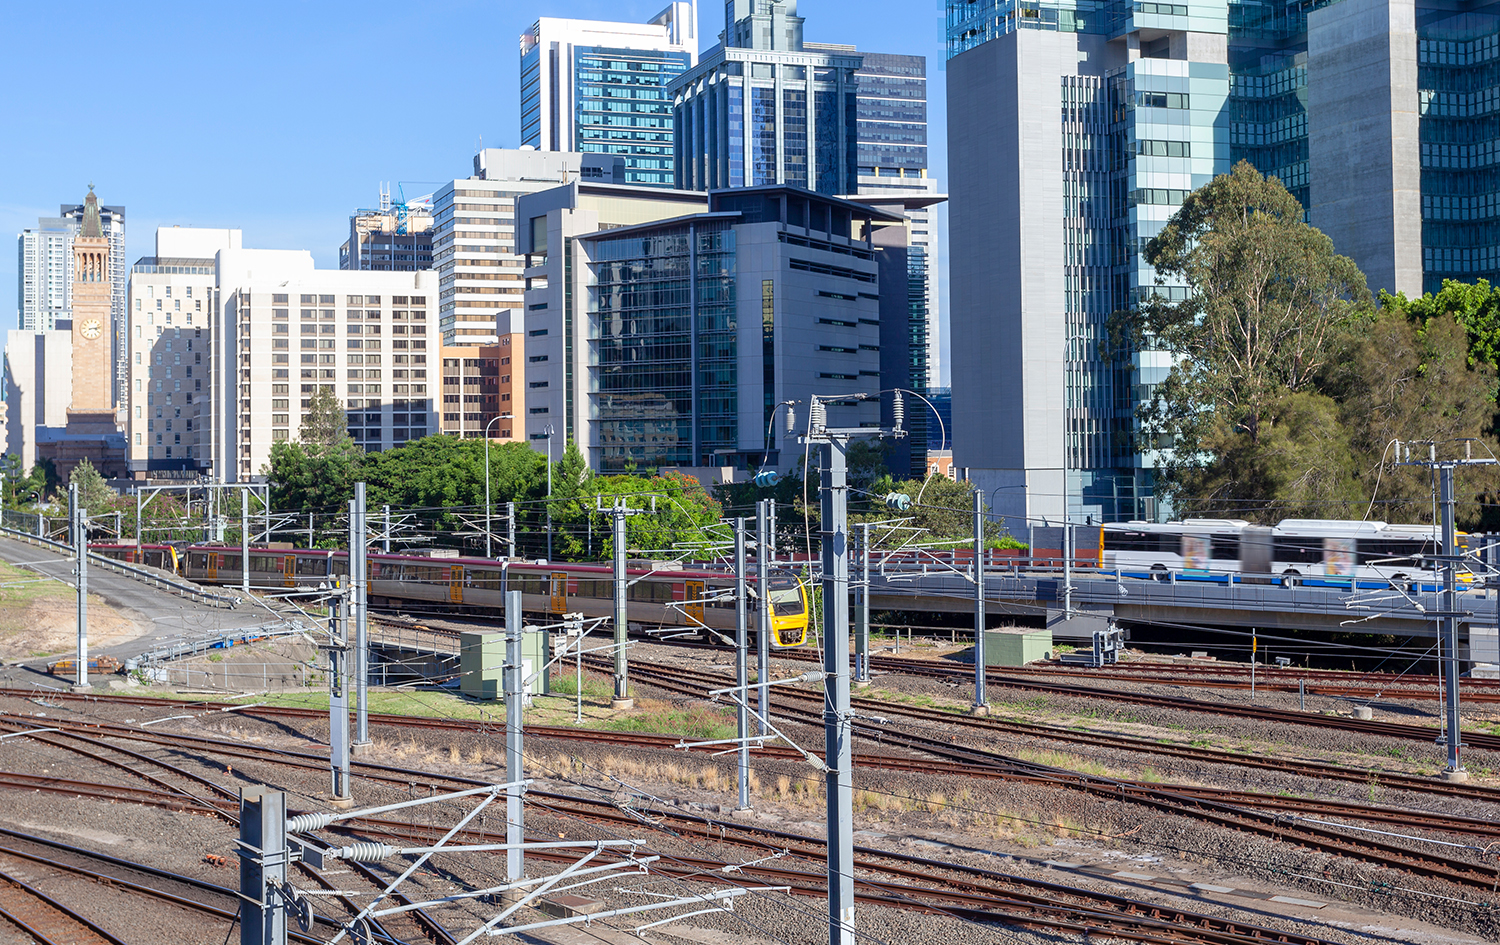 Trains in Brisbane